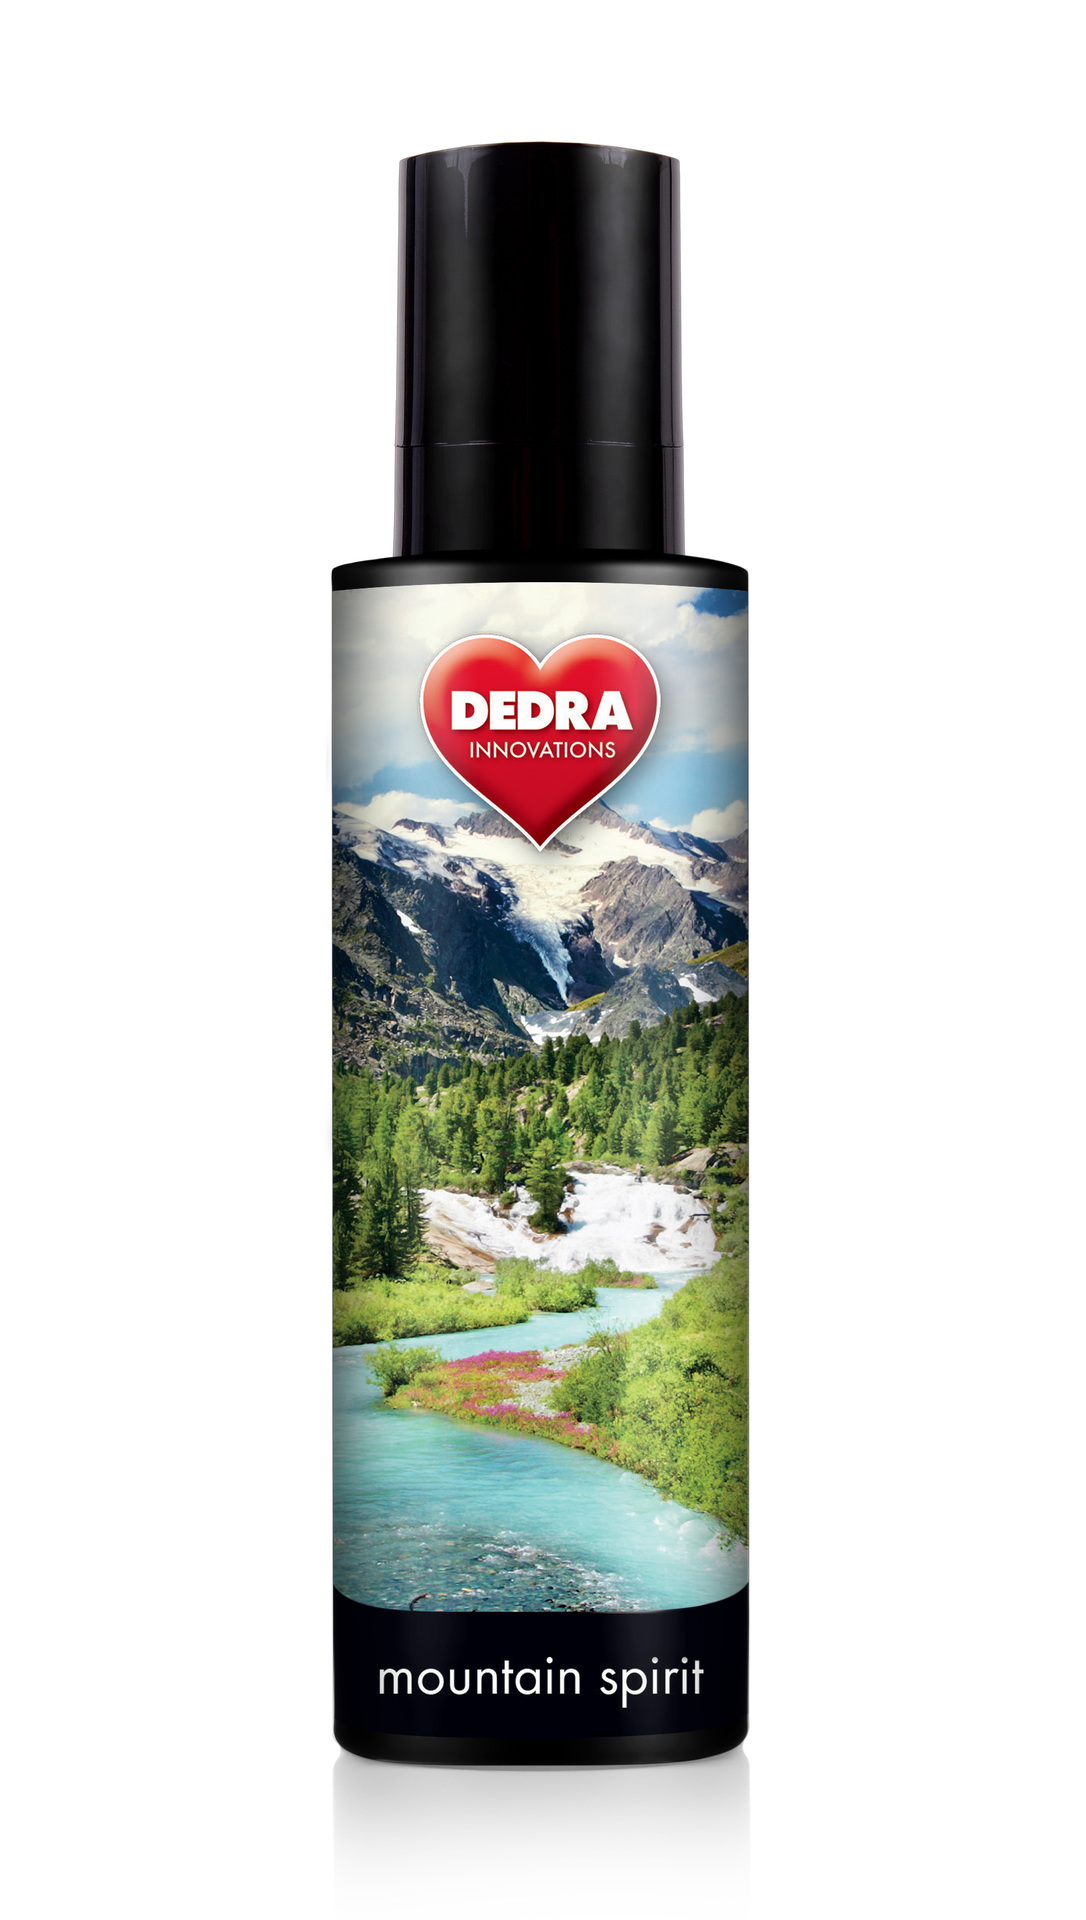 https://dedra.blob.core.windows.net/cms/ContentItems/5096_parfum-airatextiles-mountain-spirit-osvezovac-vzduchu-a-textilii/images/hp0379-2018-cerny.jpg